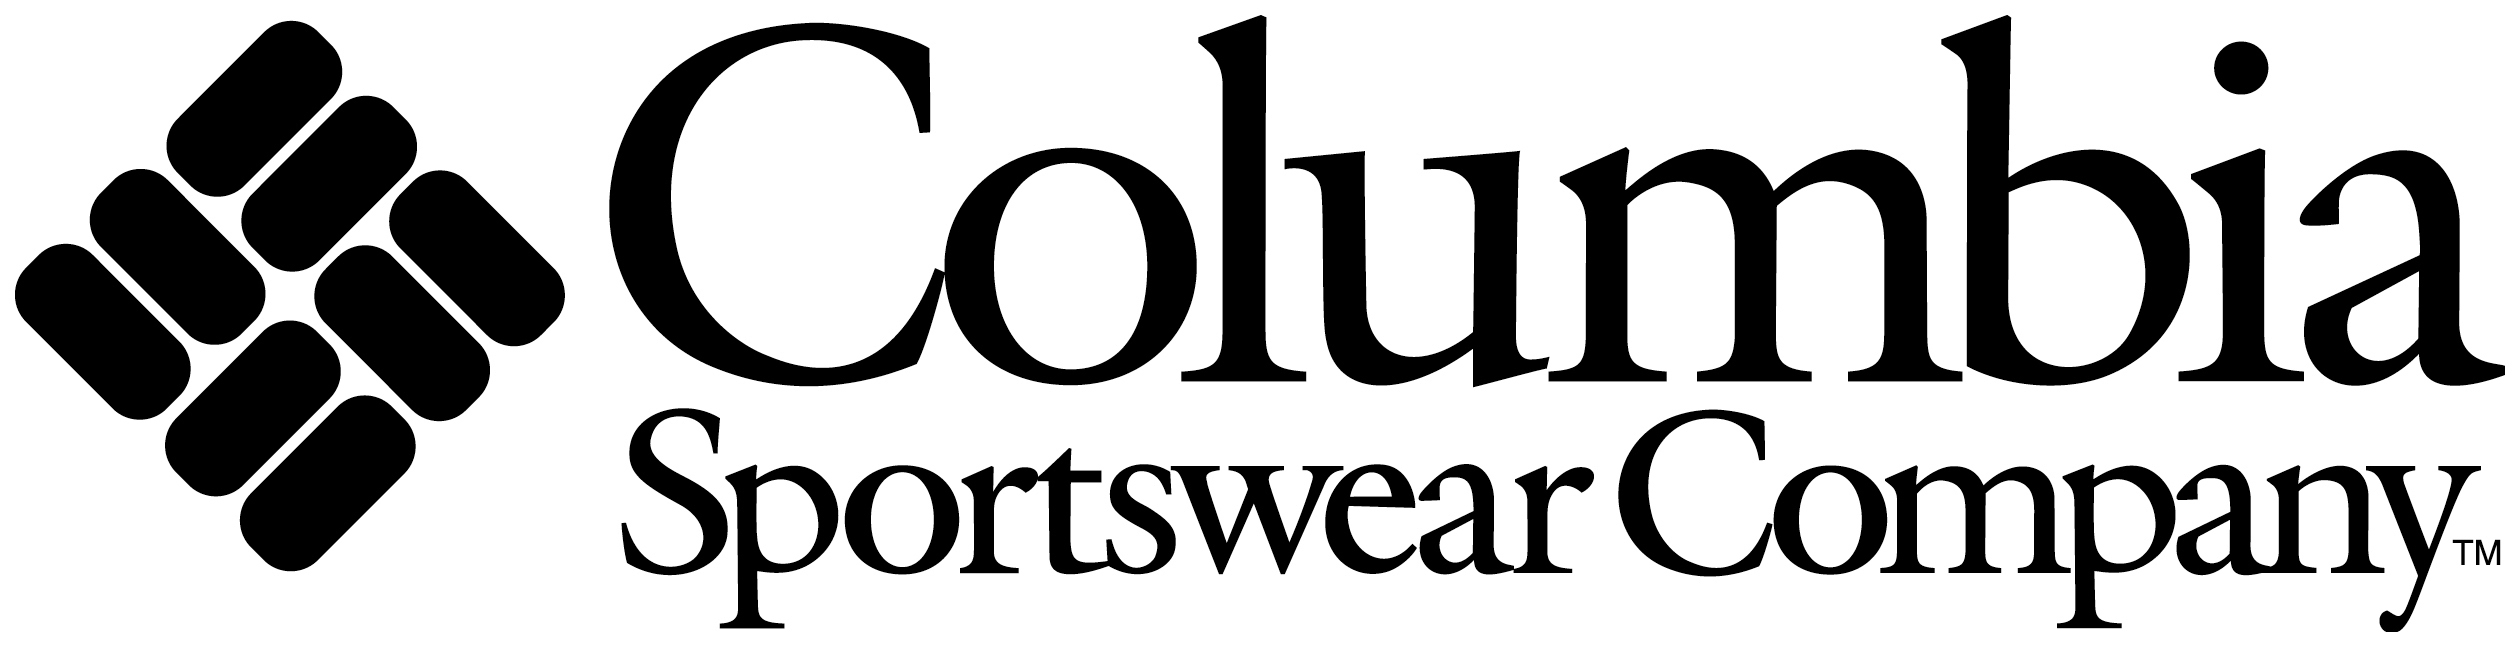 columbia sportswear subsidiaries Columbia Sportswear Company Completes Acquisition of prAna Lifestyle ...